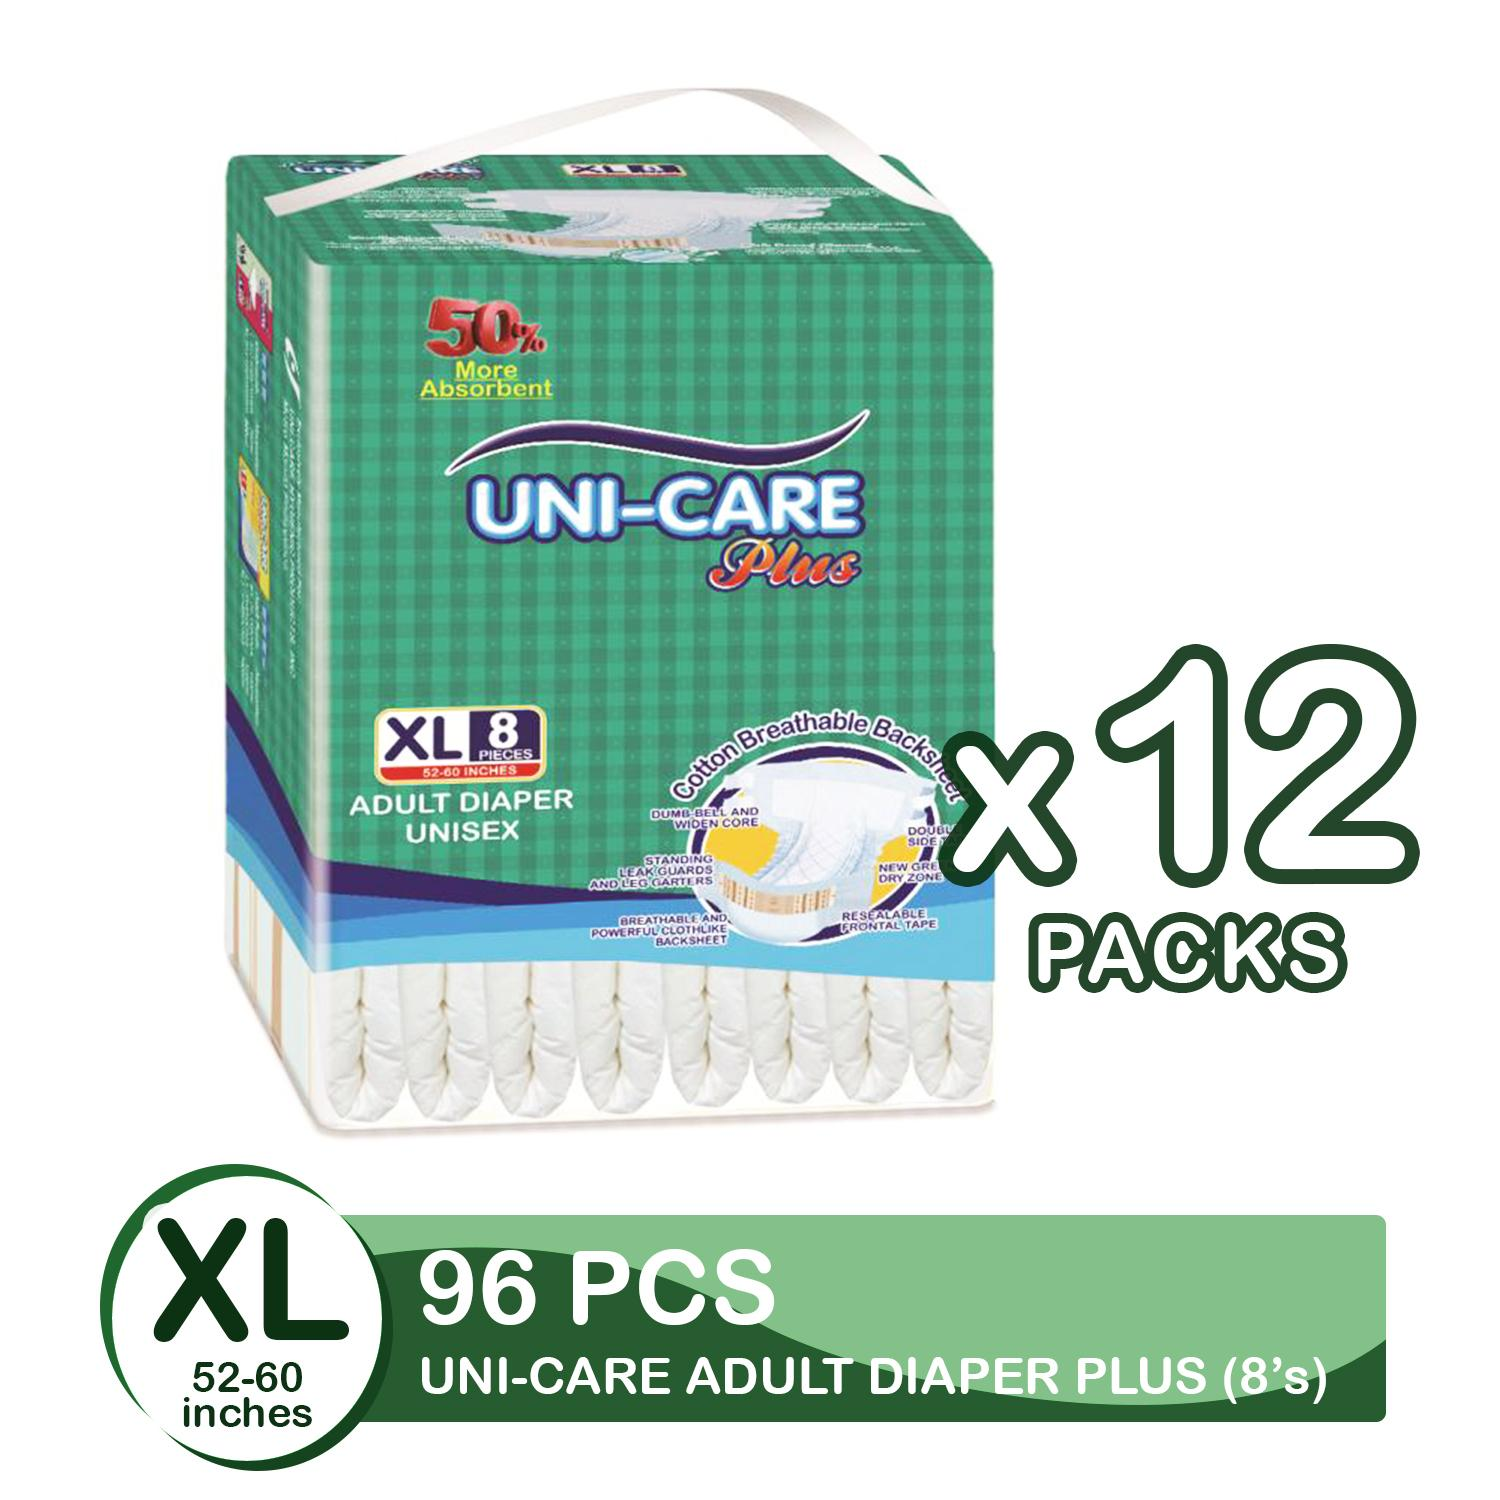 Most absorbent adult diaper — img 2